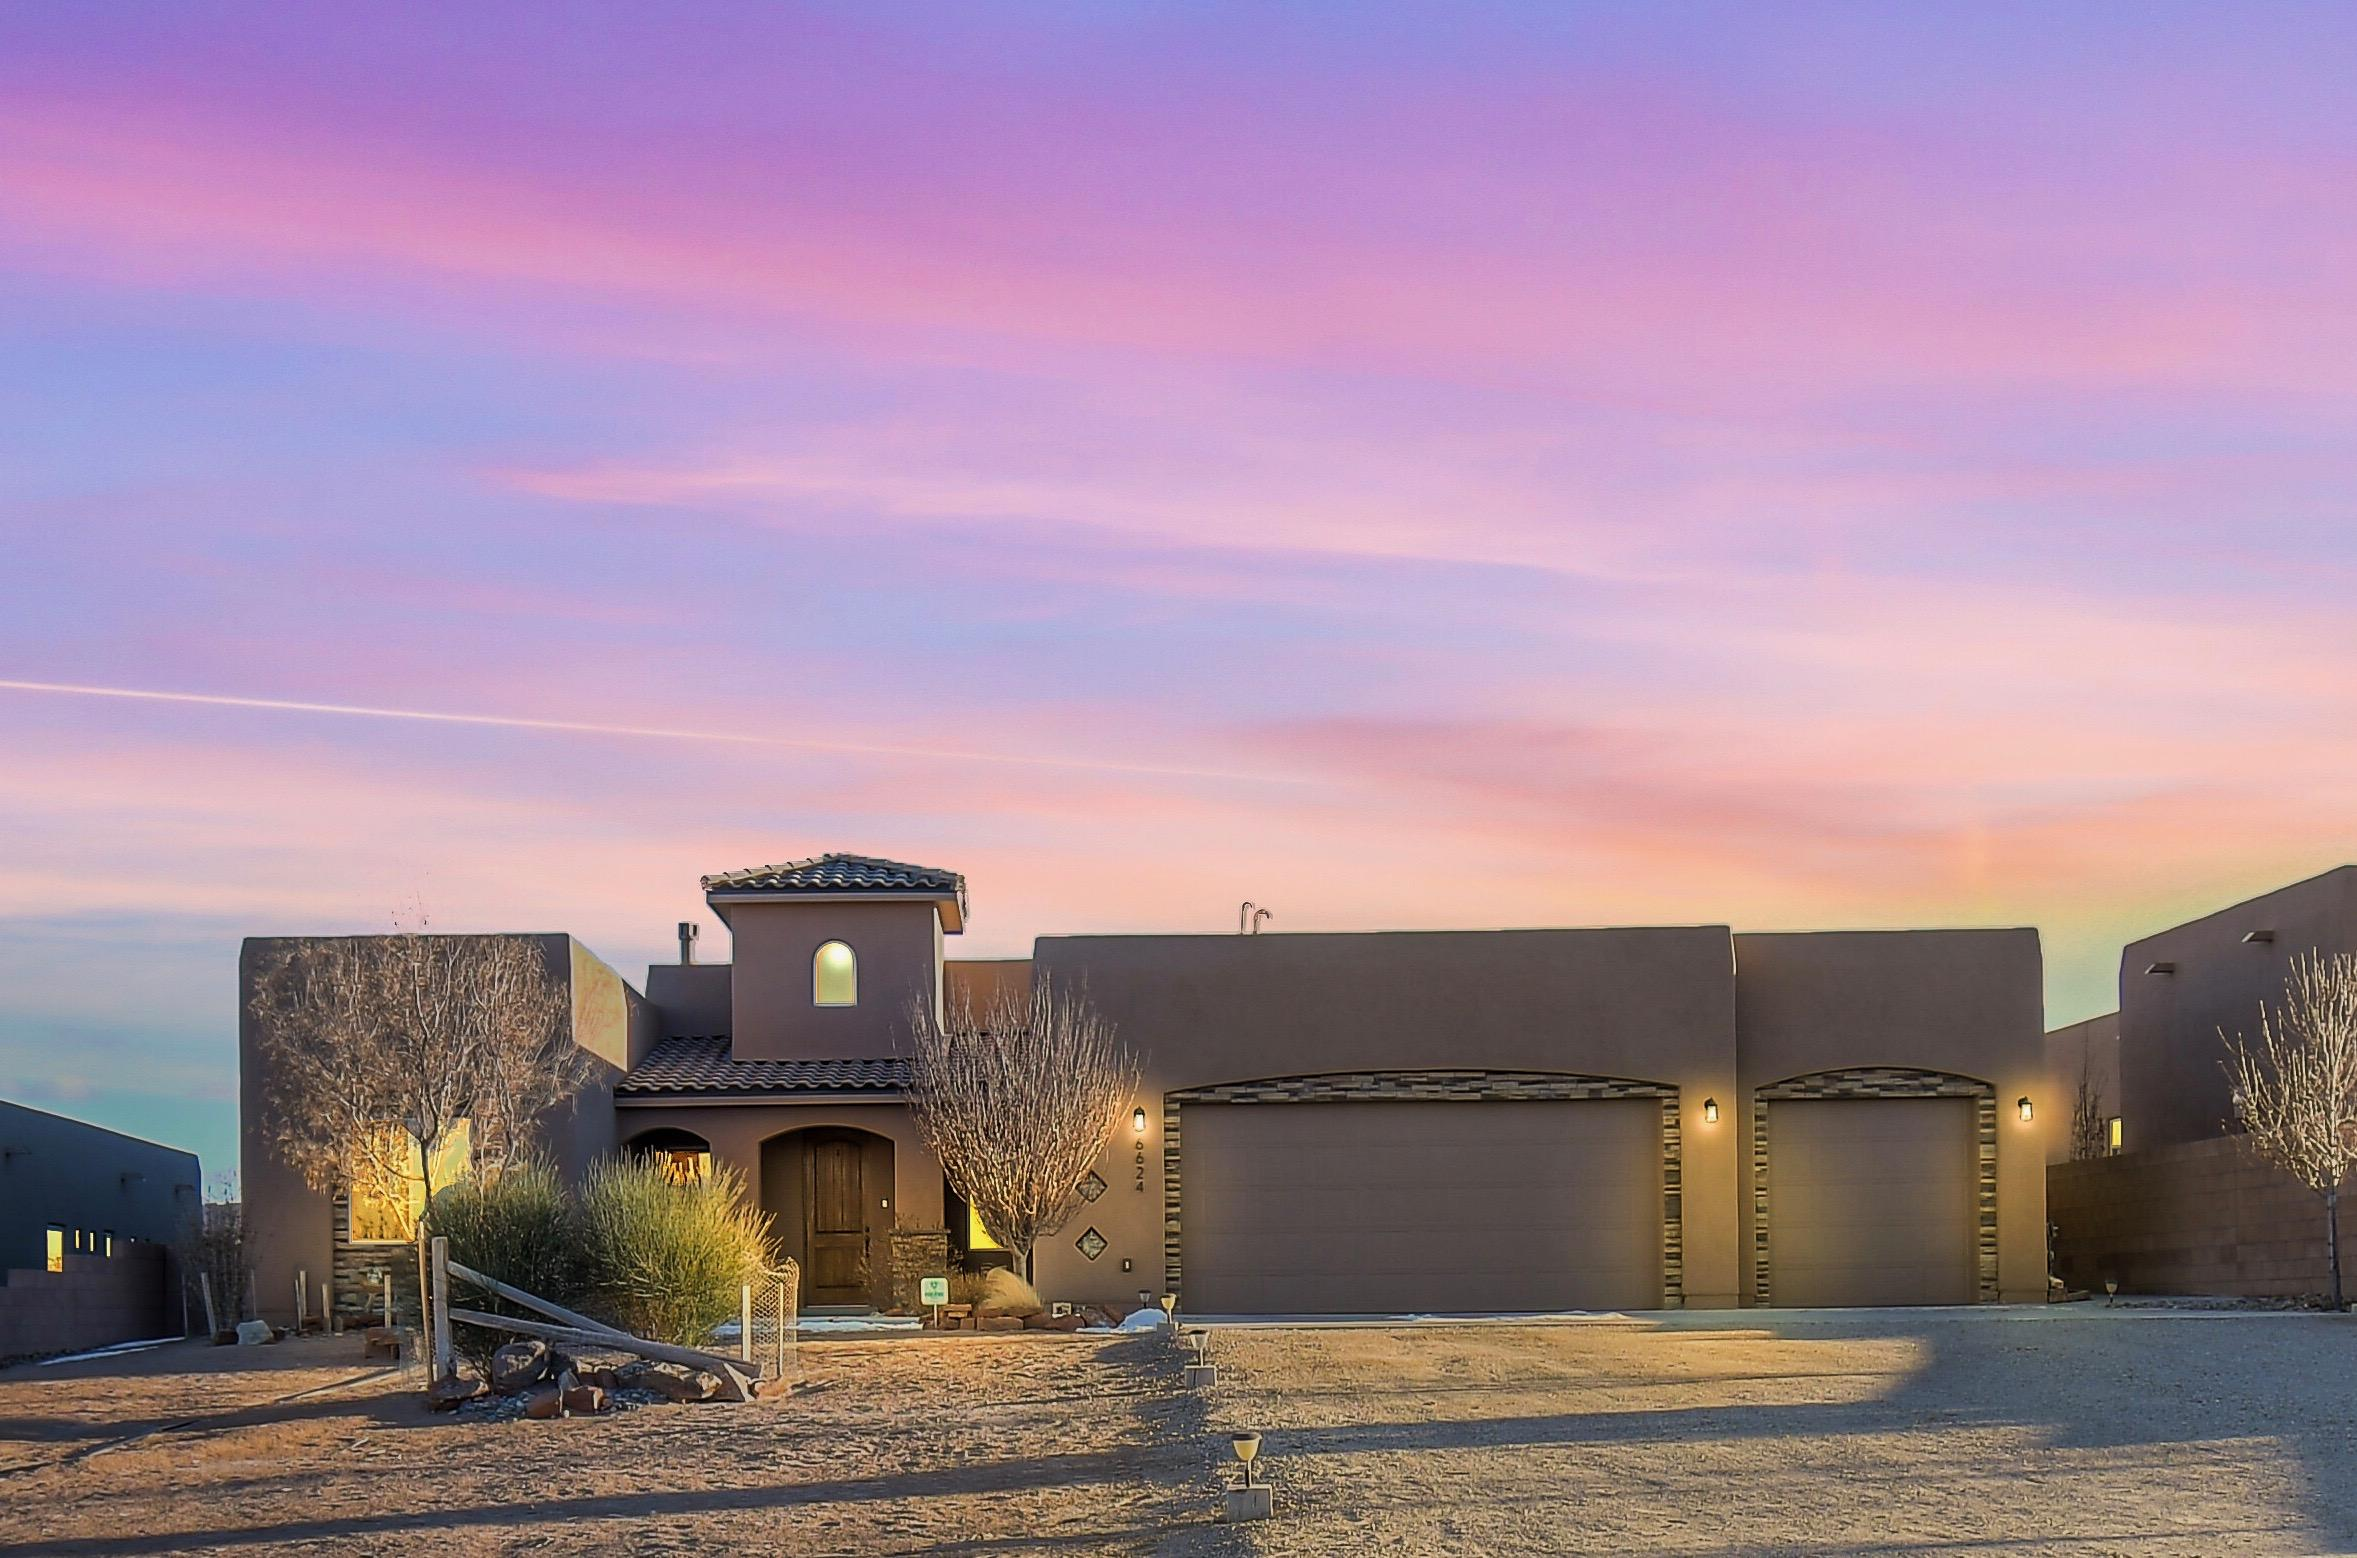 This Custom Home in Rio Rancho is something you do not want to miss! 3 Bedrooms and 3 Baths sitting at 2235 Sq.Ft. The Master Bedroom Has Breathtaking view of the Sandia Mountains, Large walk in shower, Luxurious Bath Tub, Double Sinks and Vanity Area to get ready! Spectacular Walk in closet that is adjoined with the laundry room for convenience. The Kitchen is Great for Entertainment and a Chefs Dream with Gas Range and plenty of storage. 4 Car Garage with beautiful custom wood storage lockers. Includes a Broan Air Filtration System and water softener system.  This Home is LEED-gold Certified. Schedule a showing today!